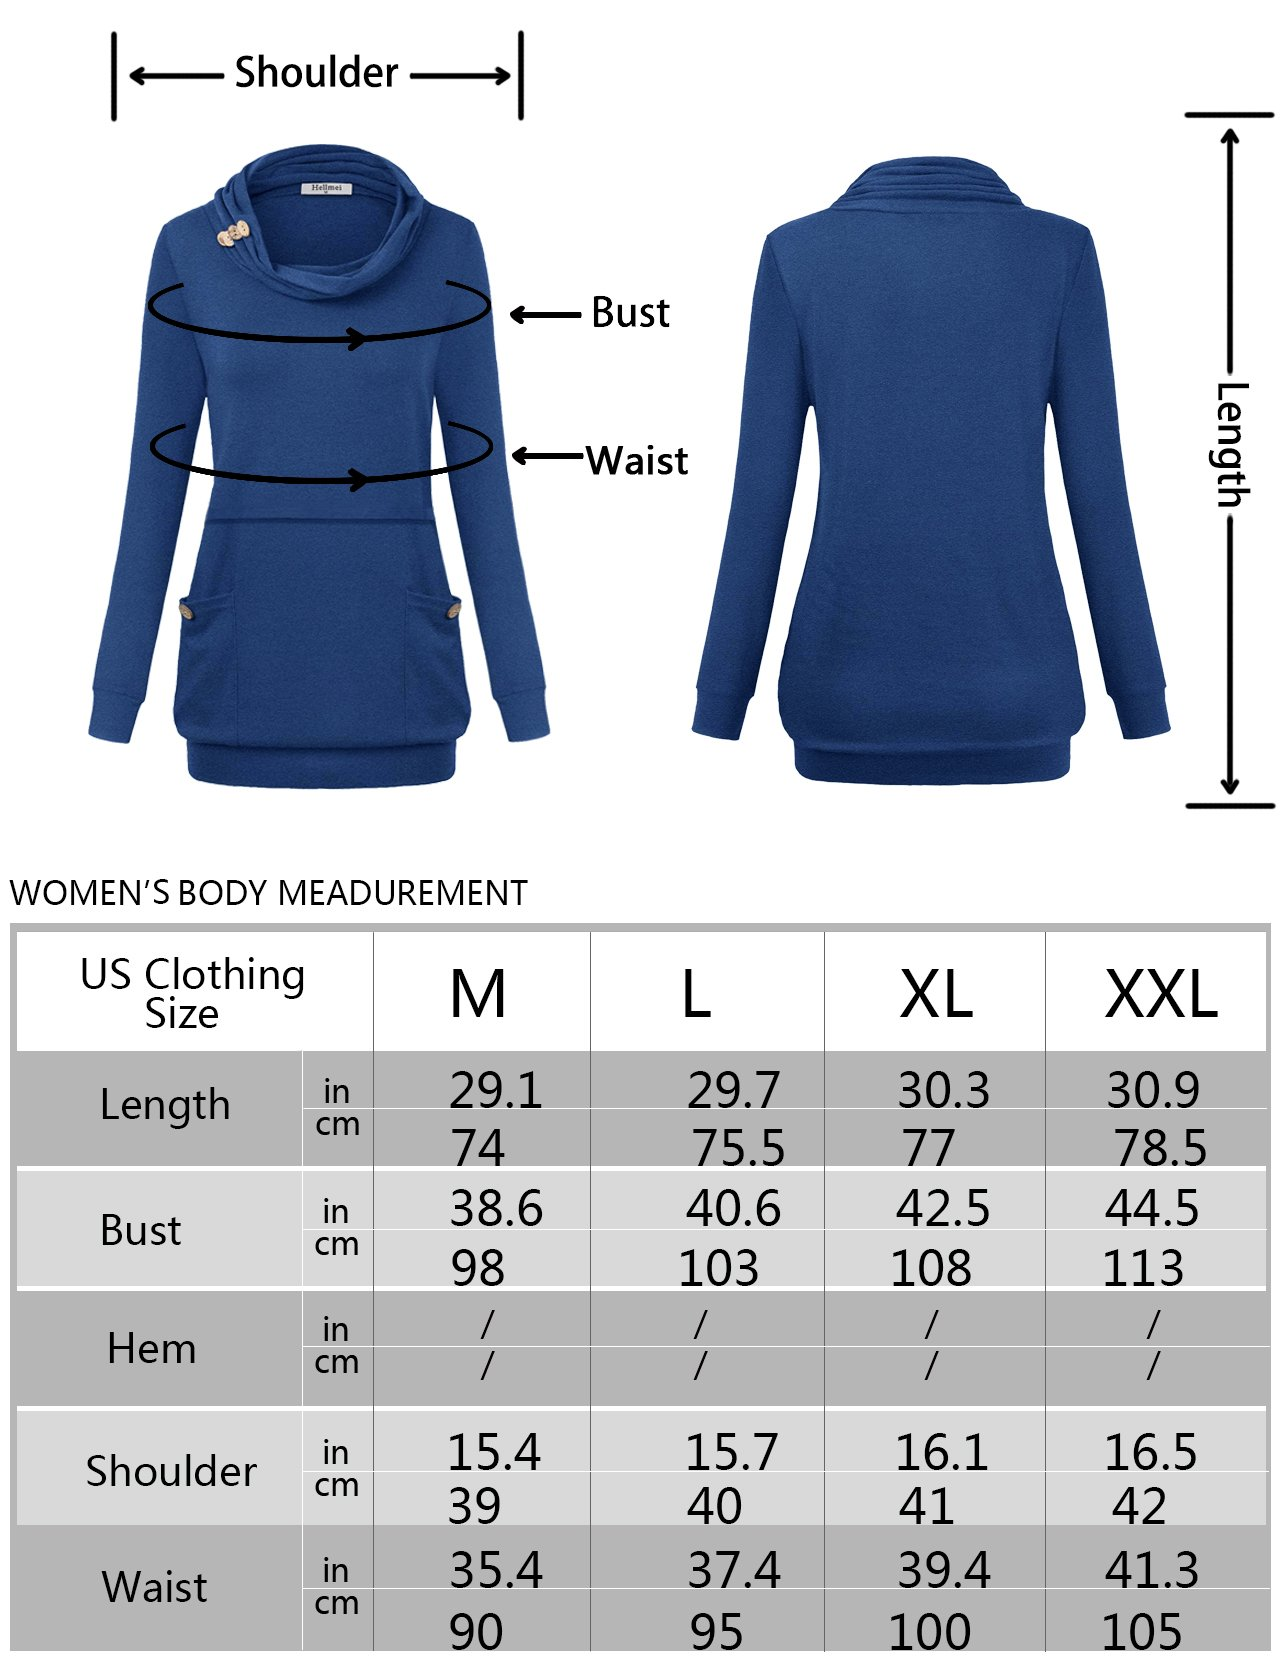 Hellmei Womens Nursing Tops, Ladies Petite Trendy Draped Prime Misses Shirt Long Sleeve Jersey Cotton Trapeze Cowl Neck Tunic A-Line Pleat Stretchy Business Casual Clothing Rose Red M by Hellmei (Image #4)